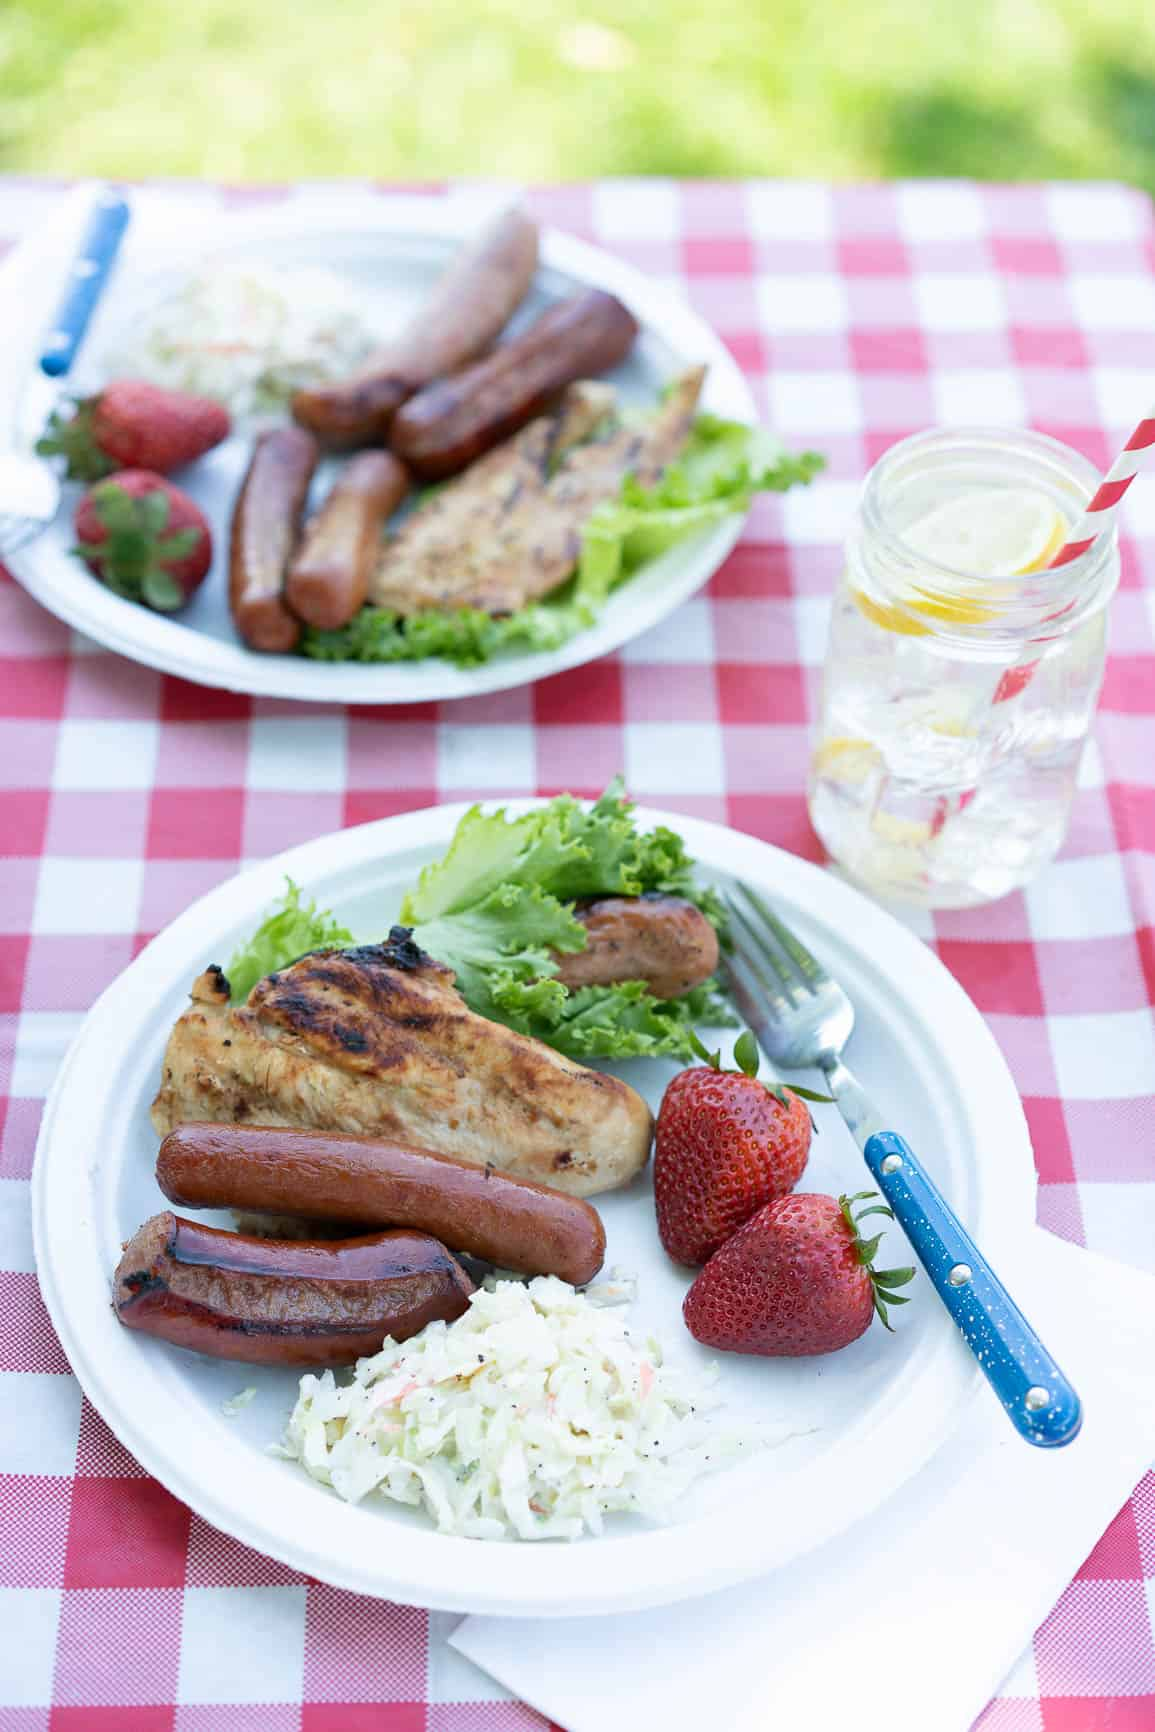 cookout plate of food; hot dogs, kielbasa, chicken, strawberries, and Cole slaw.